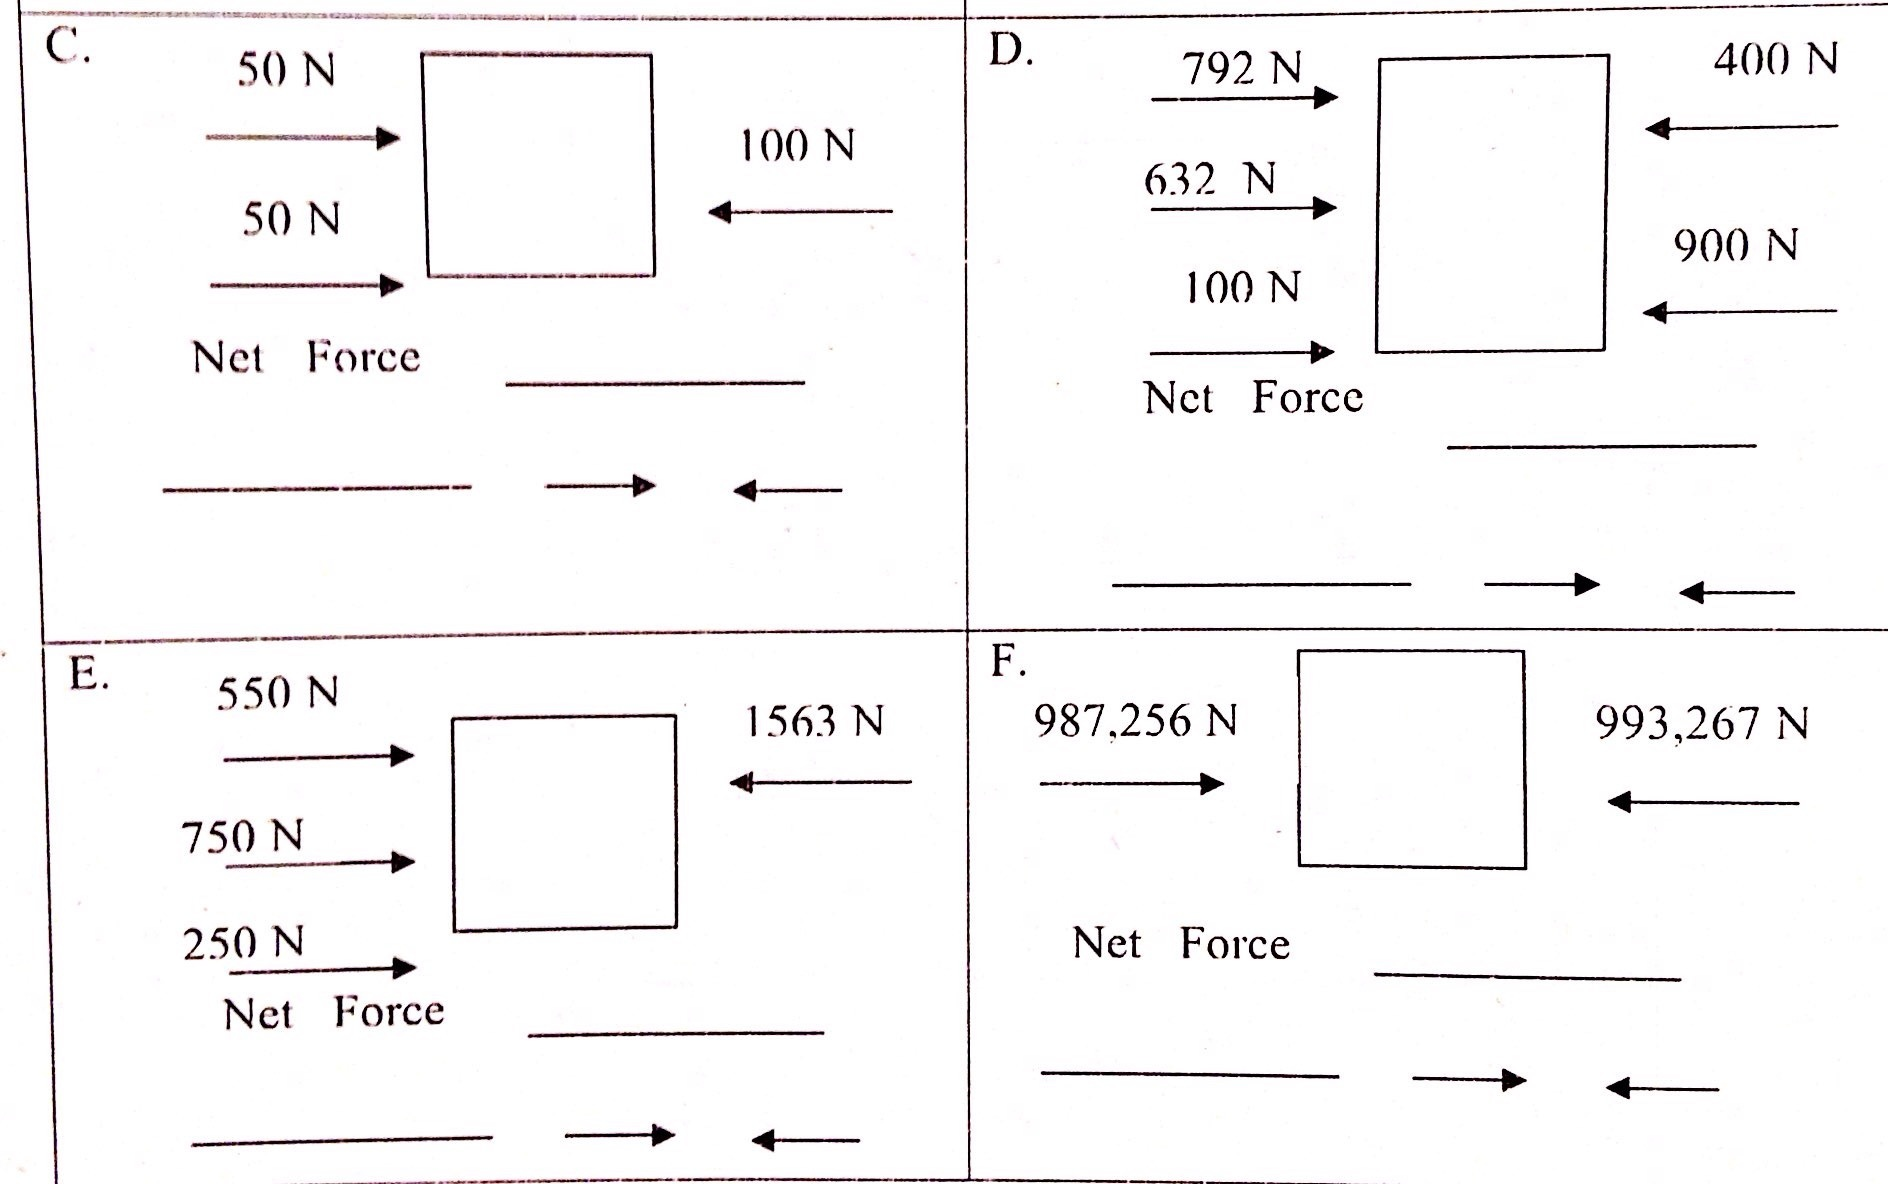 Please Help Me On Calculating Net Force Examples E And D